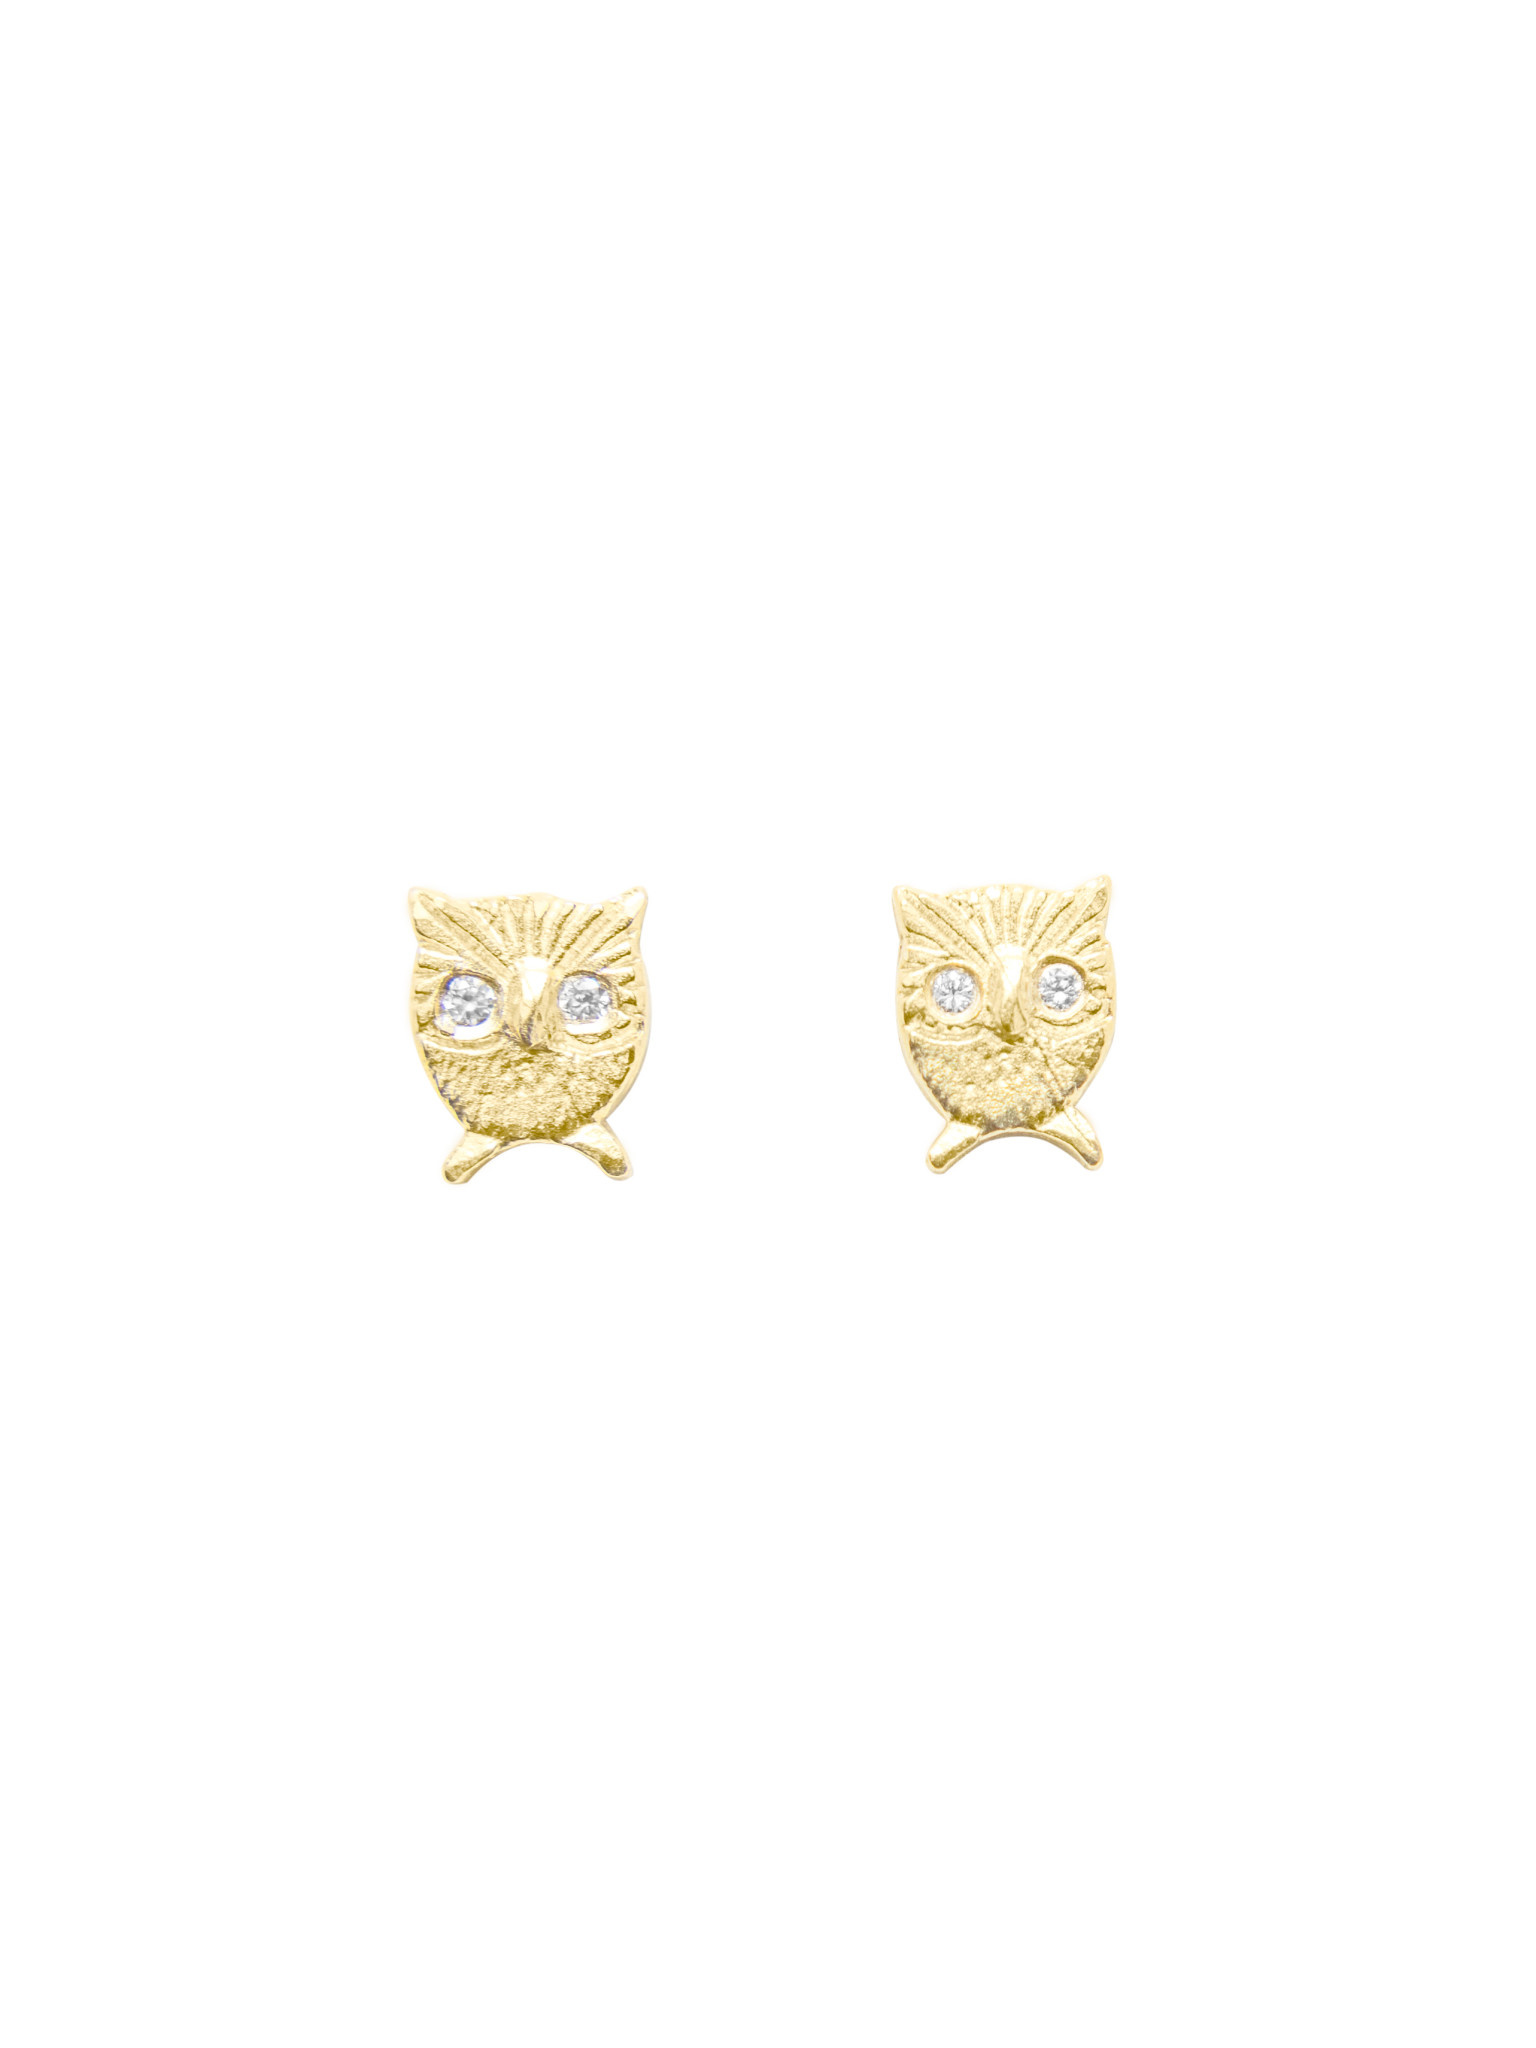 Victoria Cunningham 14k Gold Owl Earrings